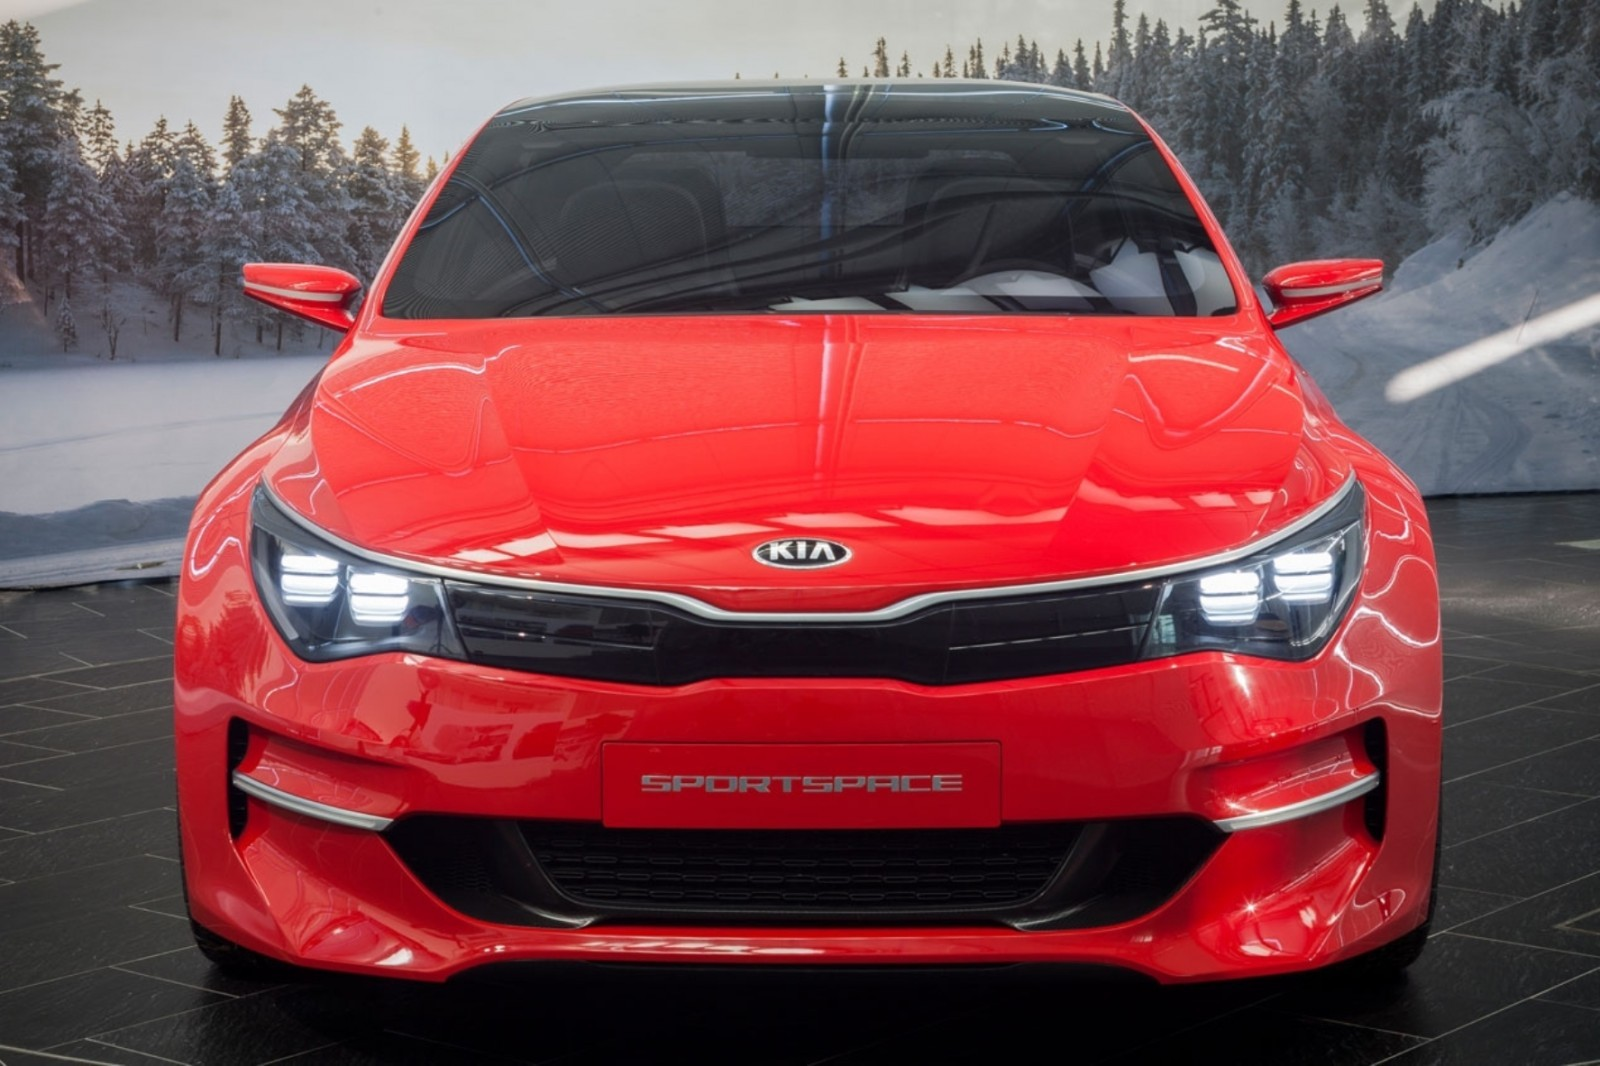 2015 Kia SPORTSPACE Concept - Latest Photos 13